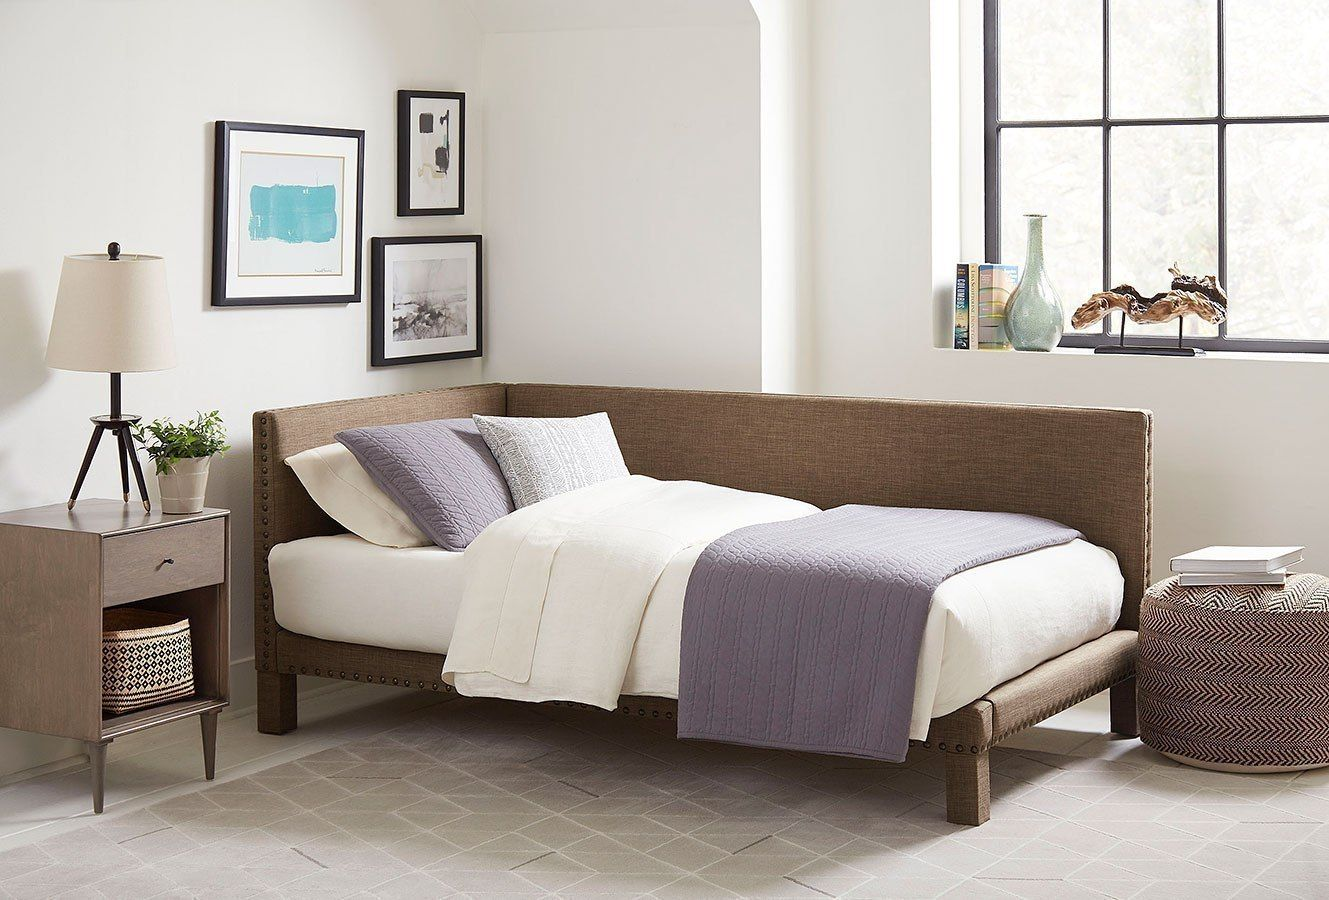 Ryleigh Corner Bed (Brown) Bed frame sizes, Low loft